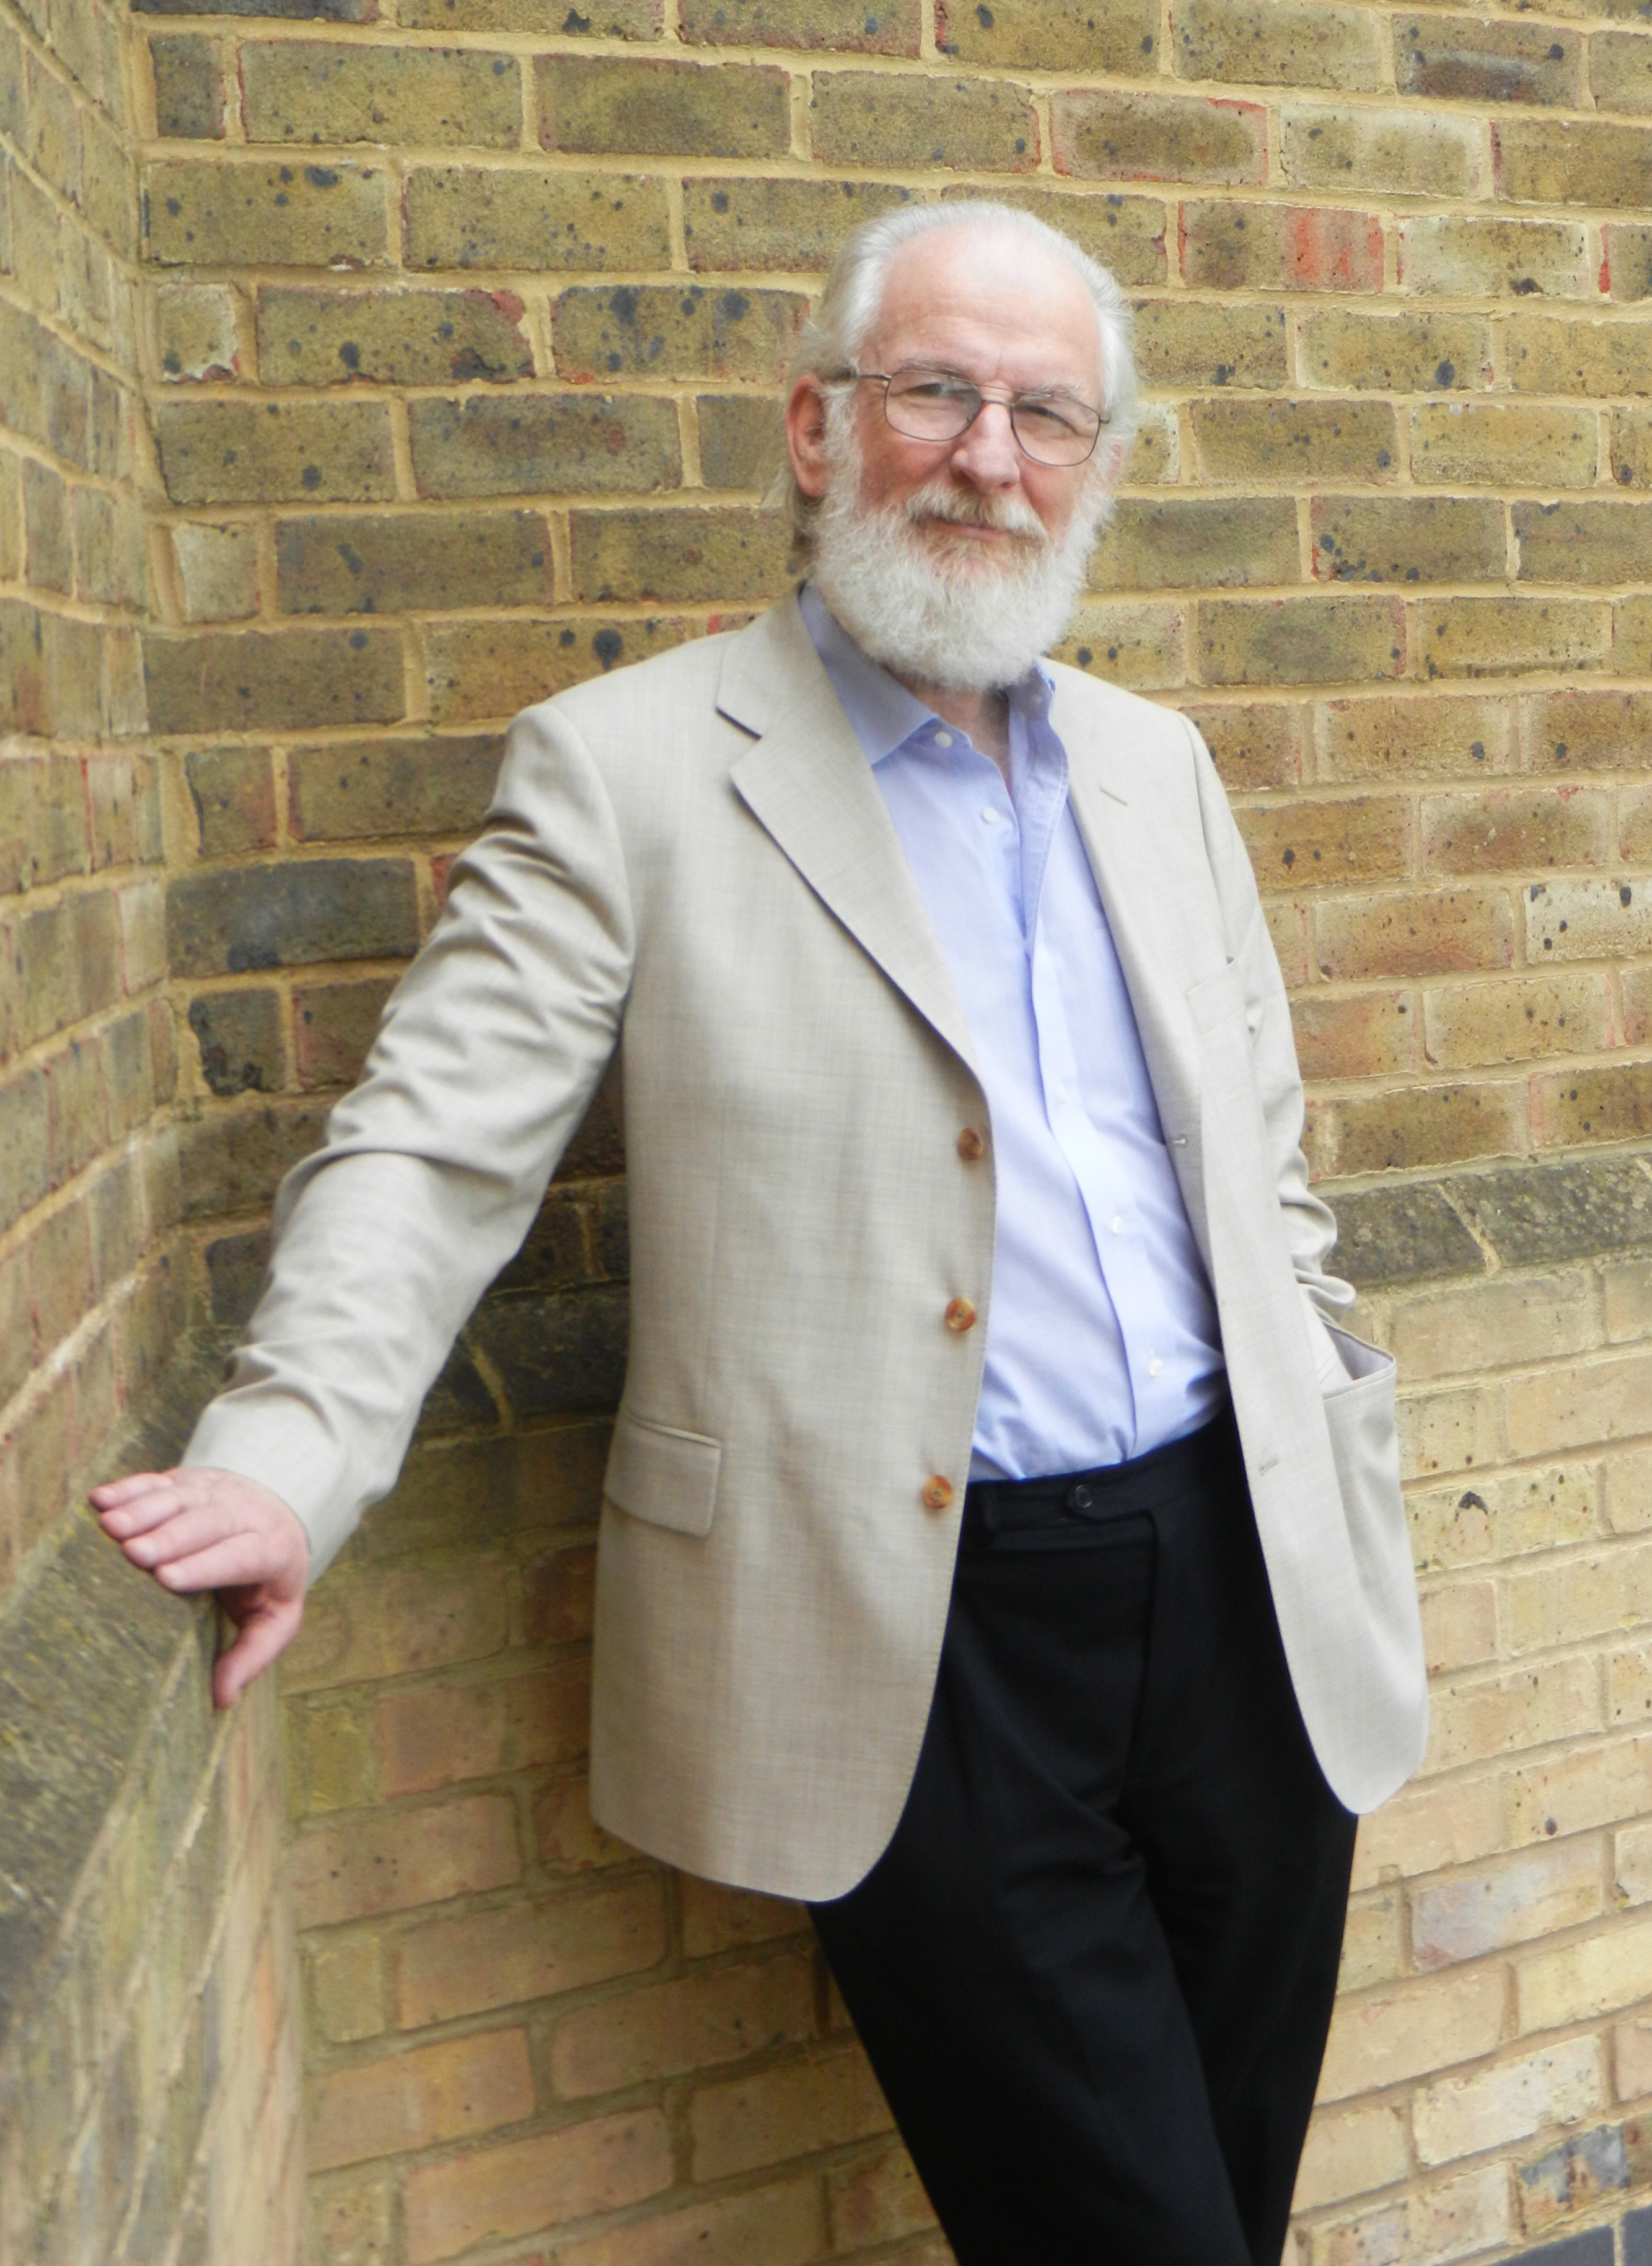 Academic Summer David Crystal - speaker at workshops and lectures